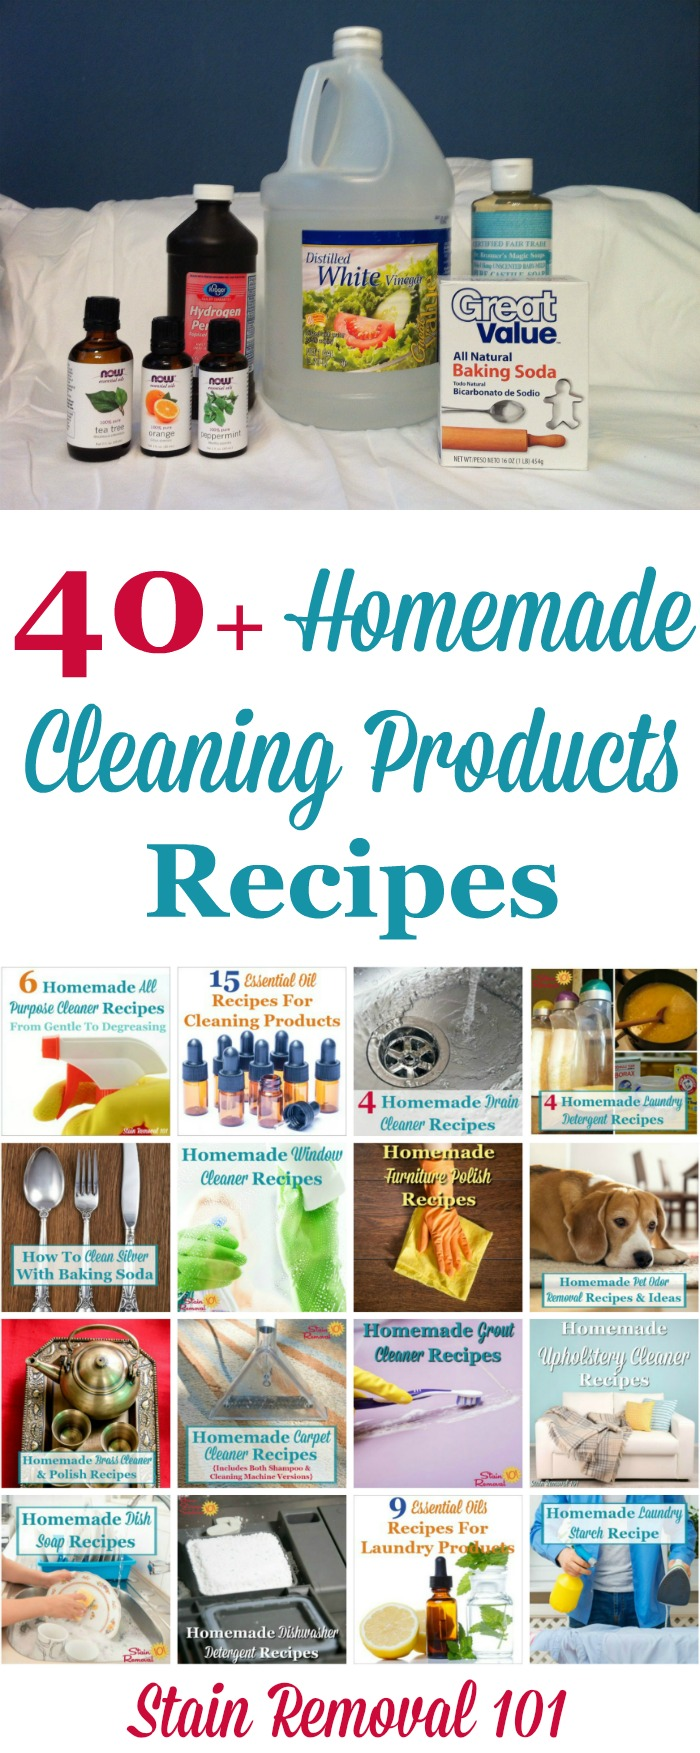 Over 40 homemade cleaning products recipes and instructions, for all around your house, with many types of ingredients, so you can make your own homemade cleaning solutions {on Stain Removal 101} #HomemadeCleaningProducts #HomemadeCleaners #CleaningRecipes